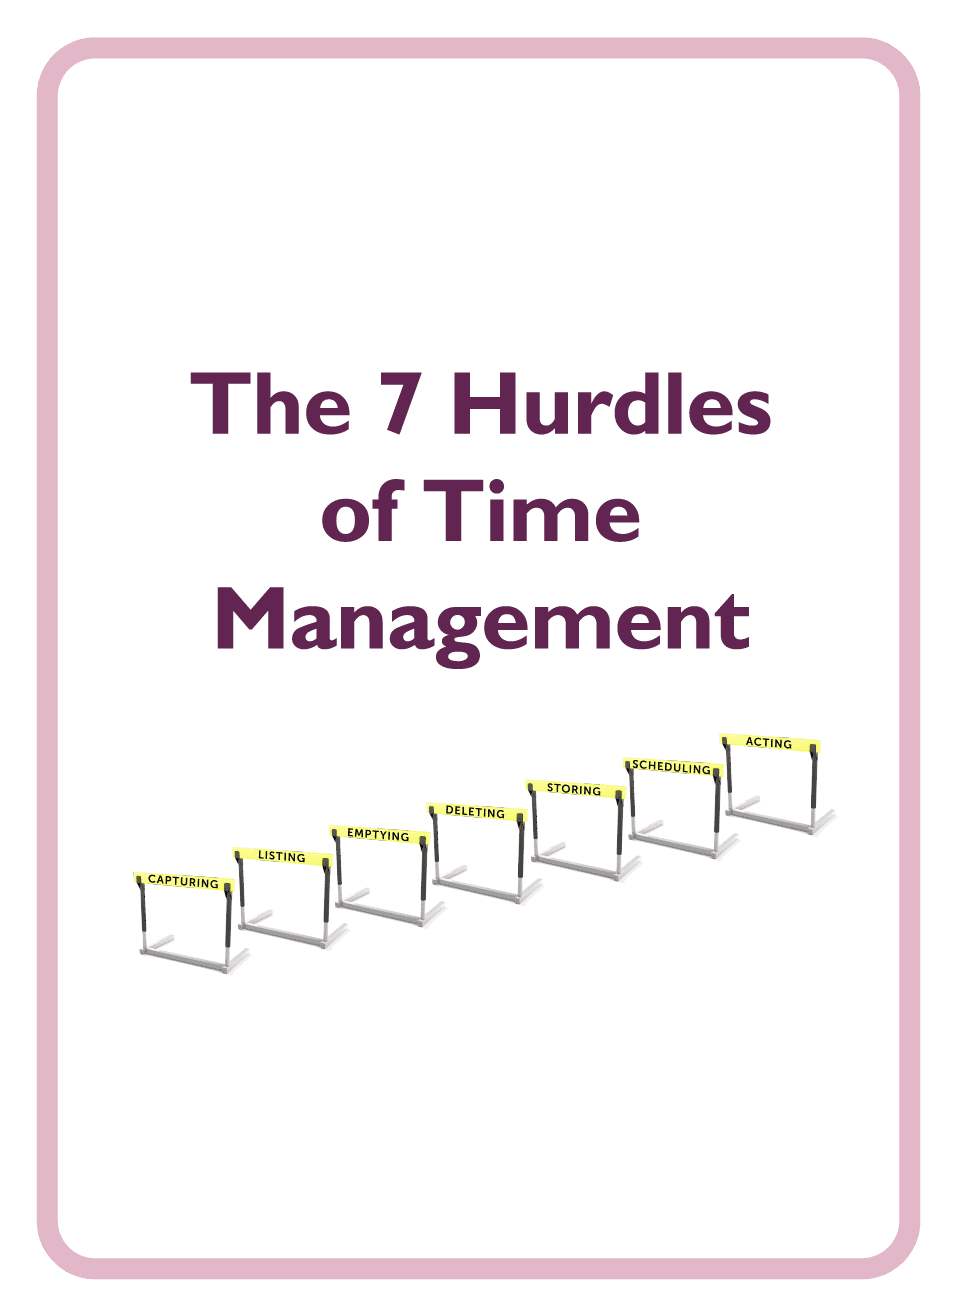 Coaching card titled The 7 Hurdles of Time Management